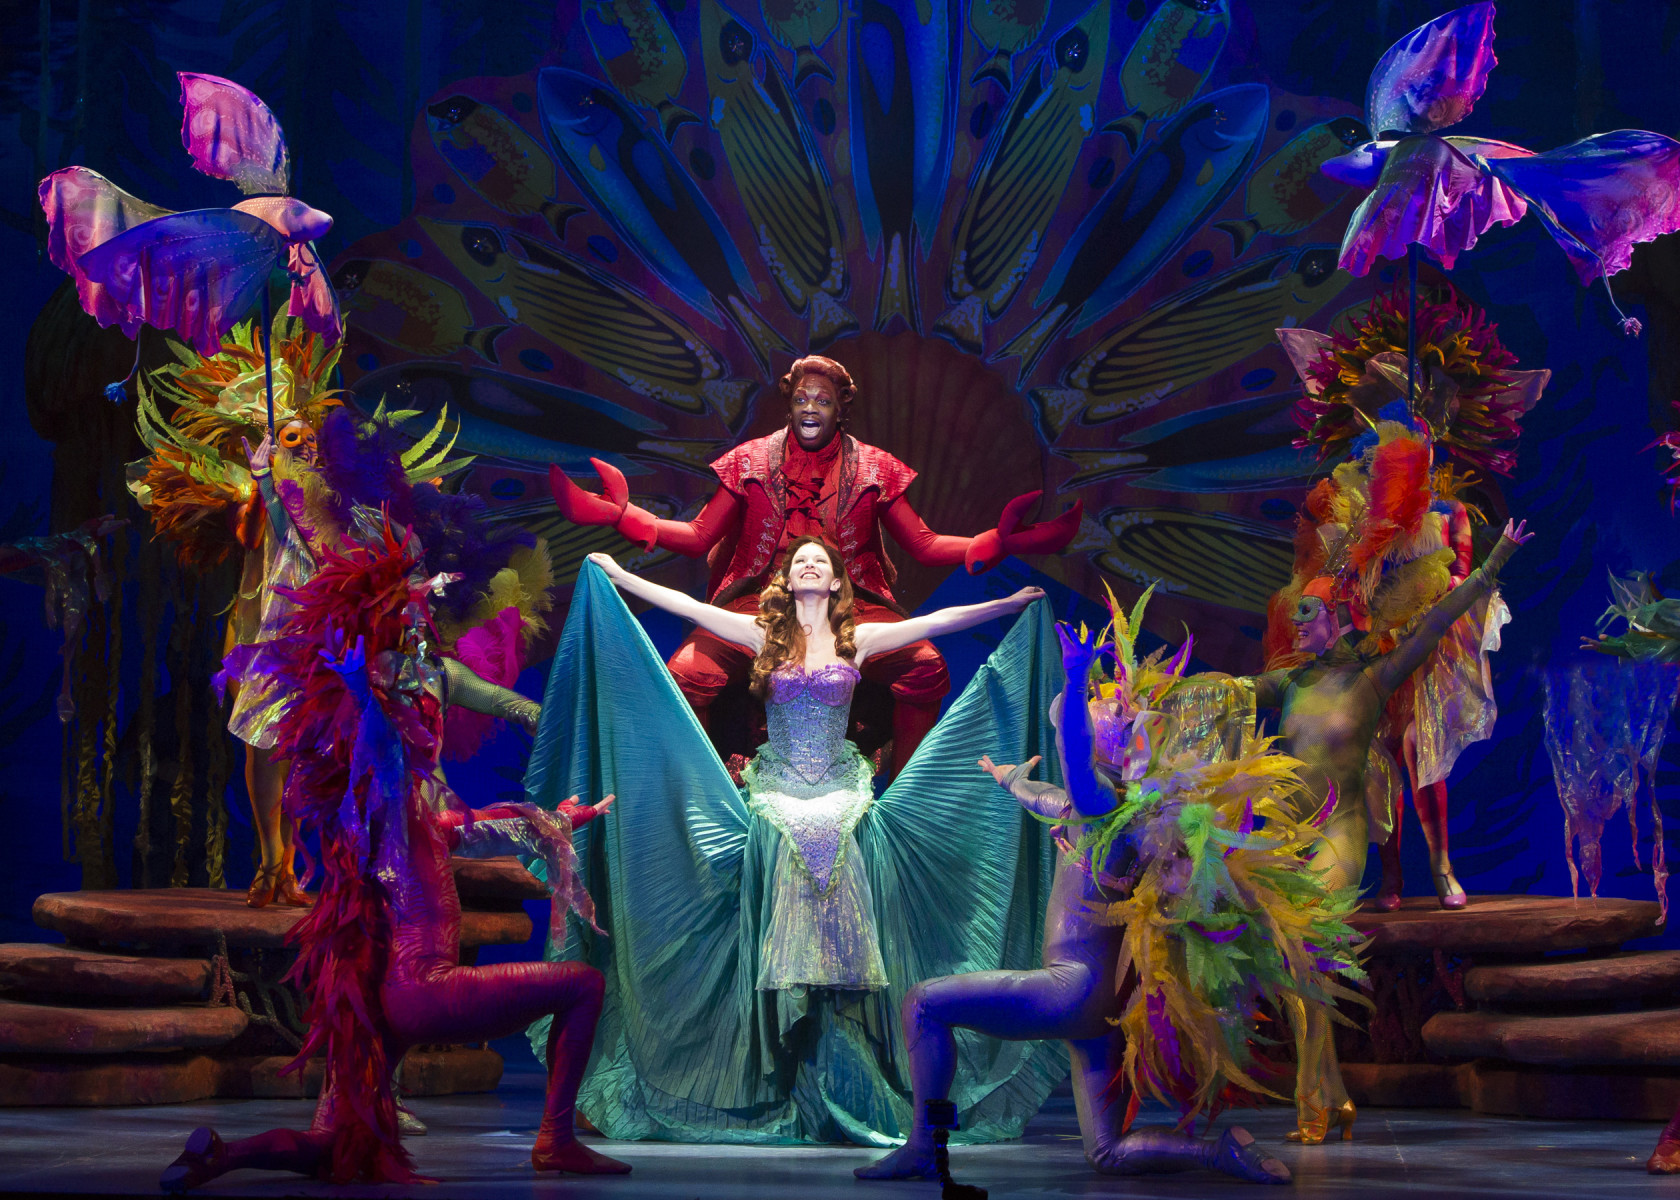 Resultado de imagen para the little mermaid broadway